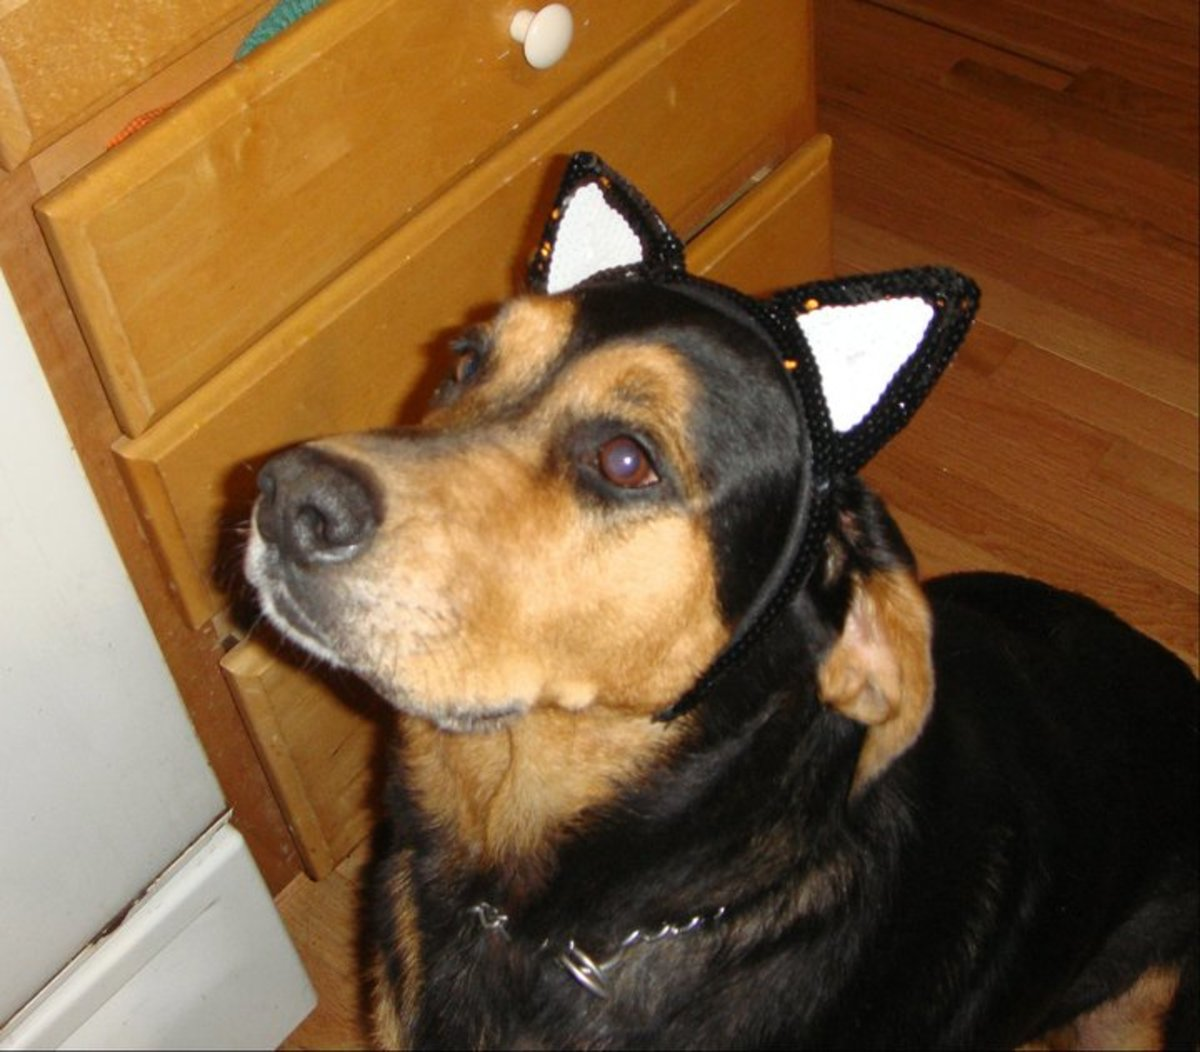 My Austrian black and tan hound, Maggie, who is the inspiration for this article. Clearly she's about to get a treat.